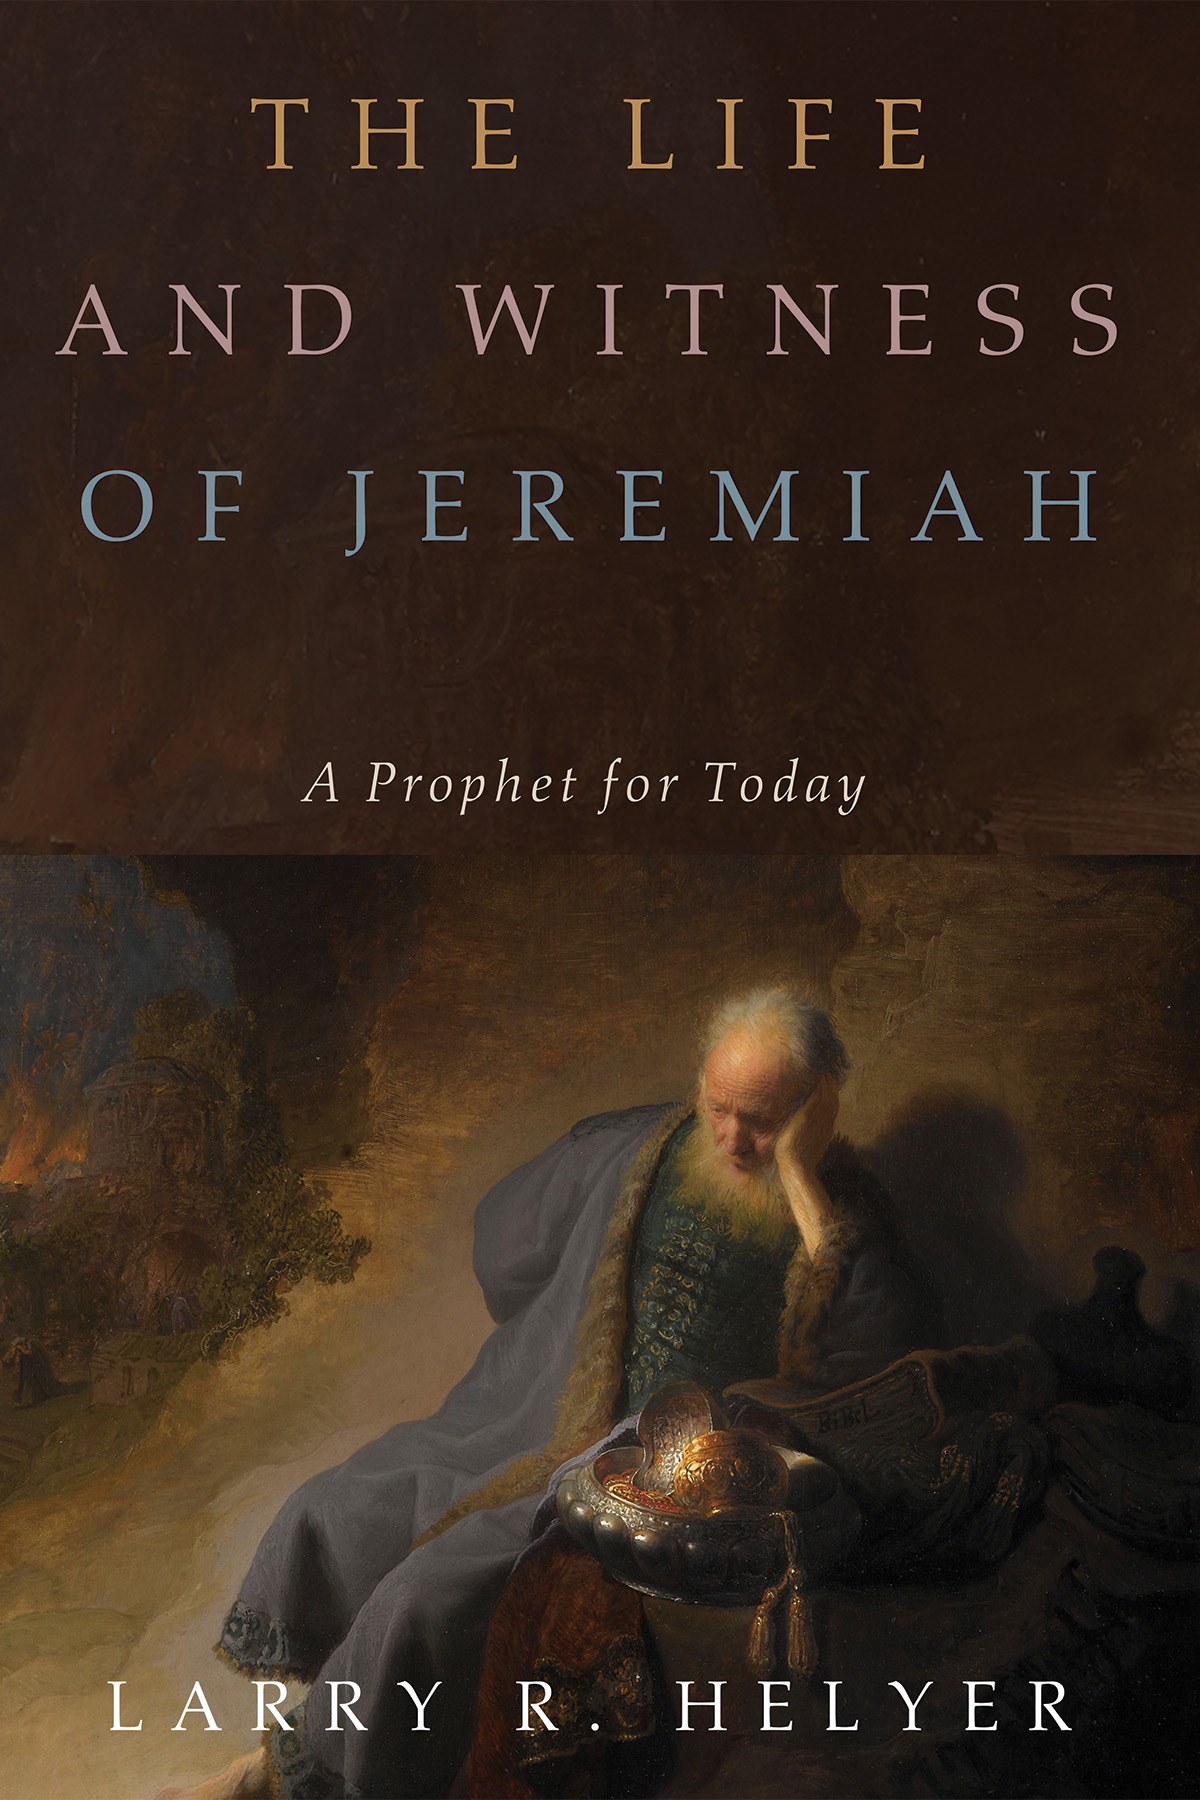 The Life and Witness of Jeremiah: A Prophet for Today